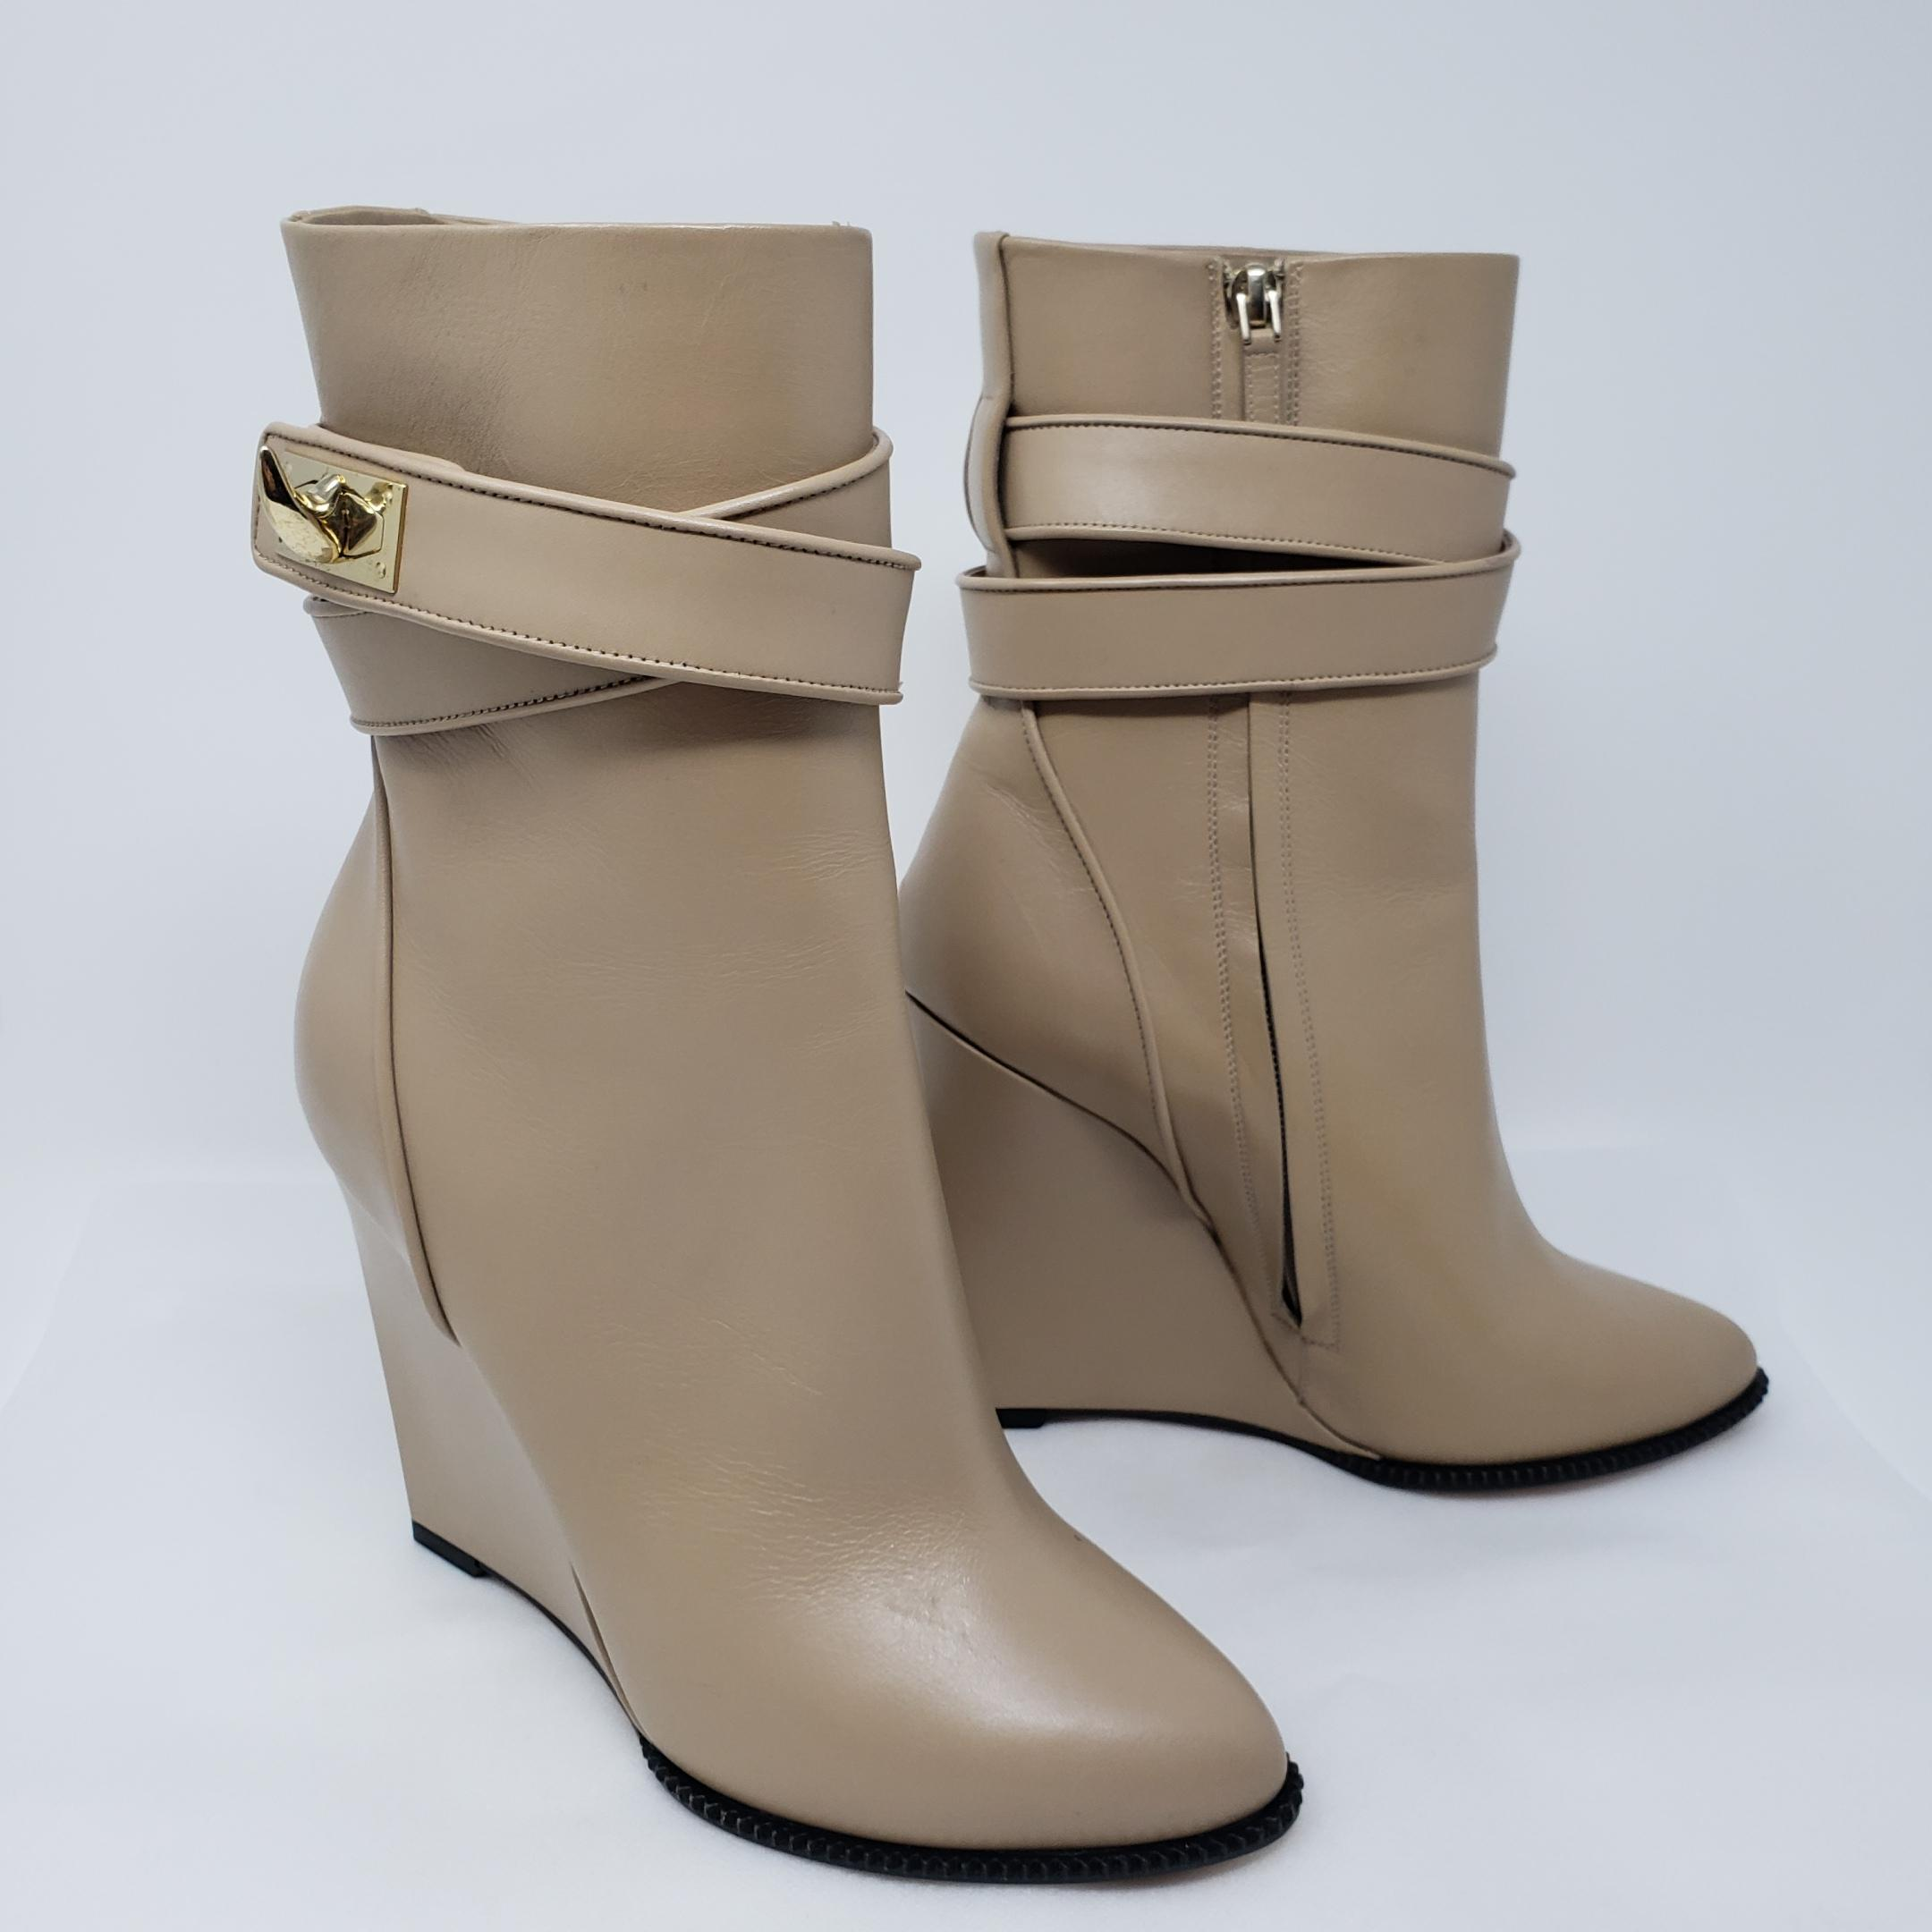 d5bdd56b3ac ... Givenchy Beige Gold Gold Gold Tan Leather Pointed-toe Mid-calf  Boots Booties ...